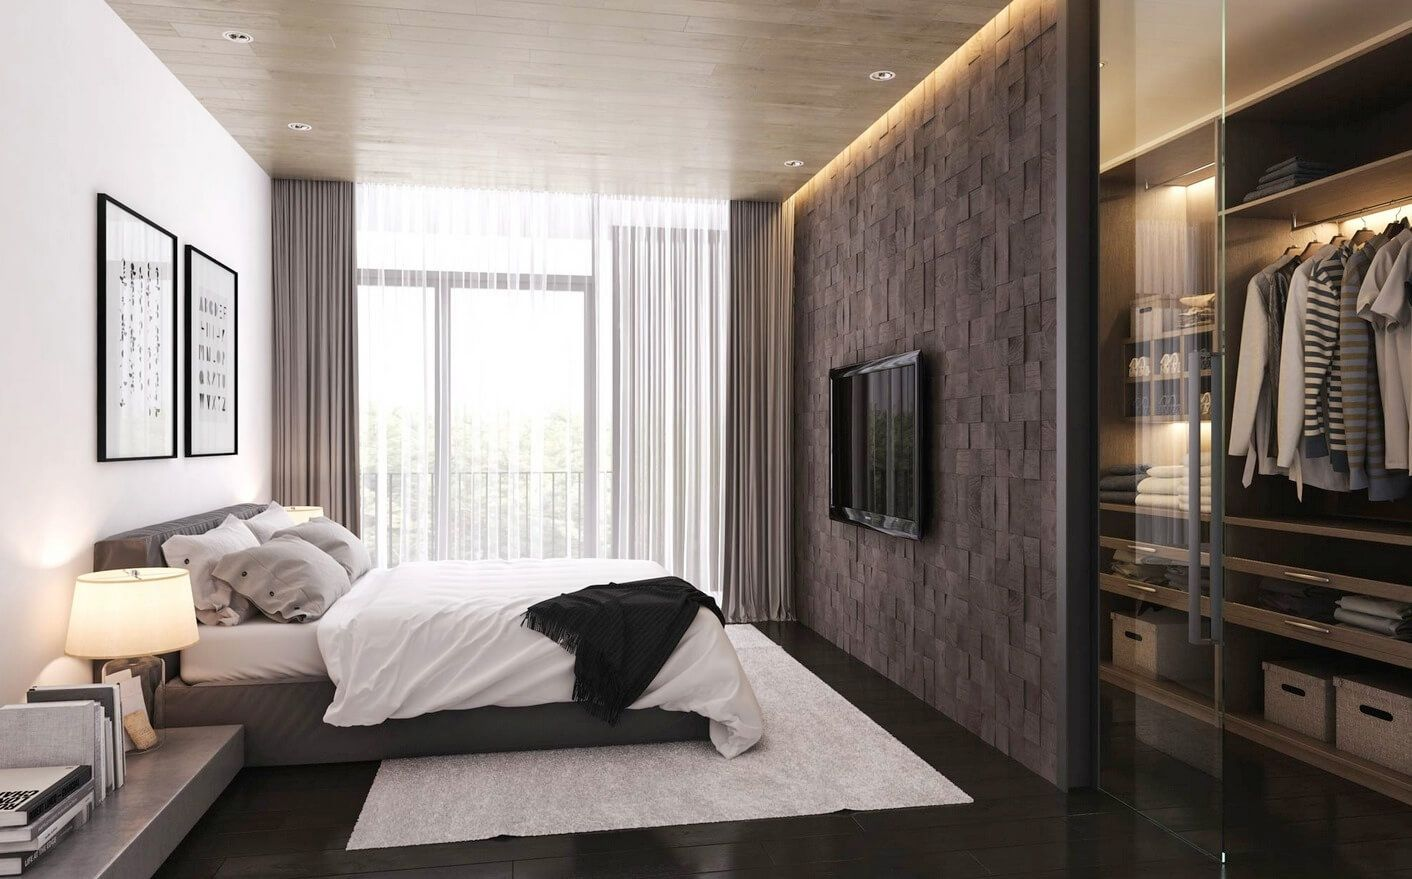 Master bedroom hdb  Best HDB Bedroom Decor Ideas that are Both Cozy and Glamorous  A